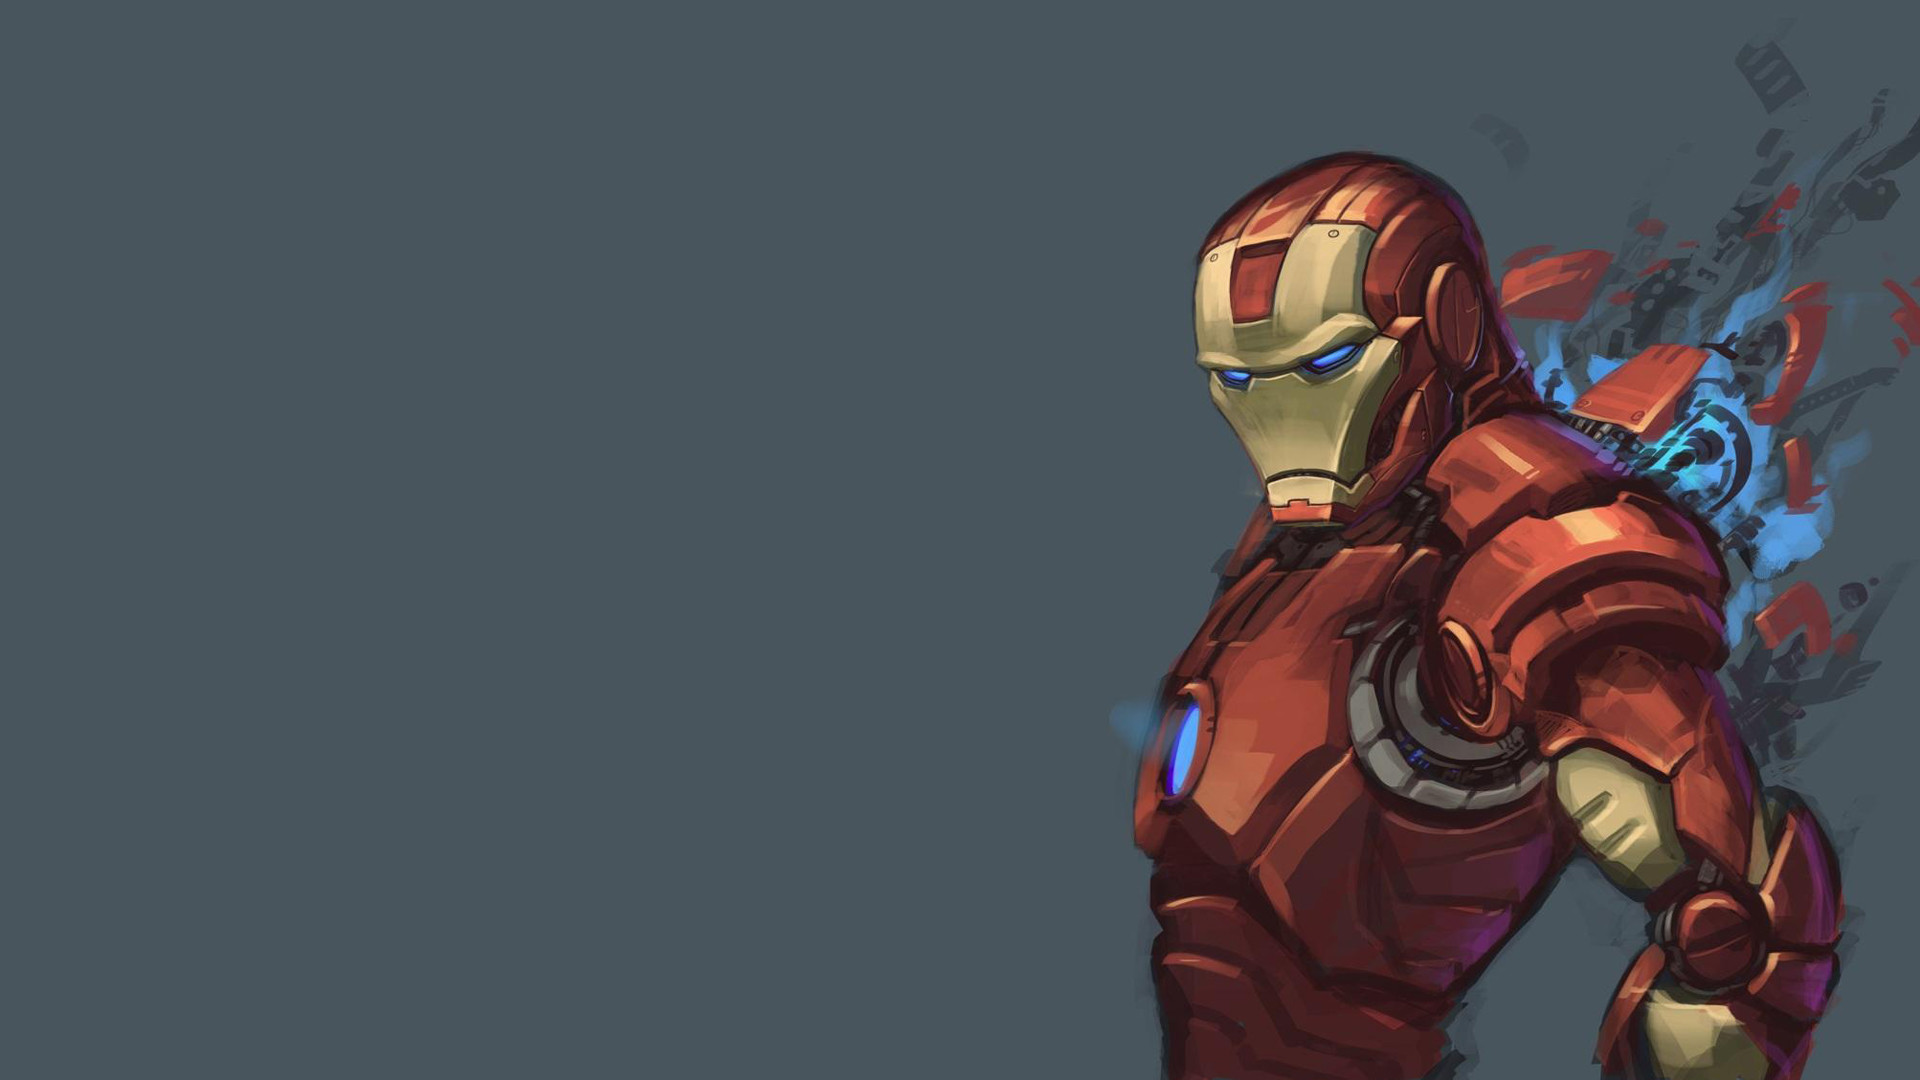 1920x1080 iron man comic book wallpaper windows wallpapers hd download free amazing background  images windows 10 tablet 1920×1080 Wallpaper HD